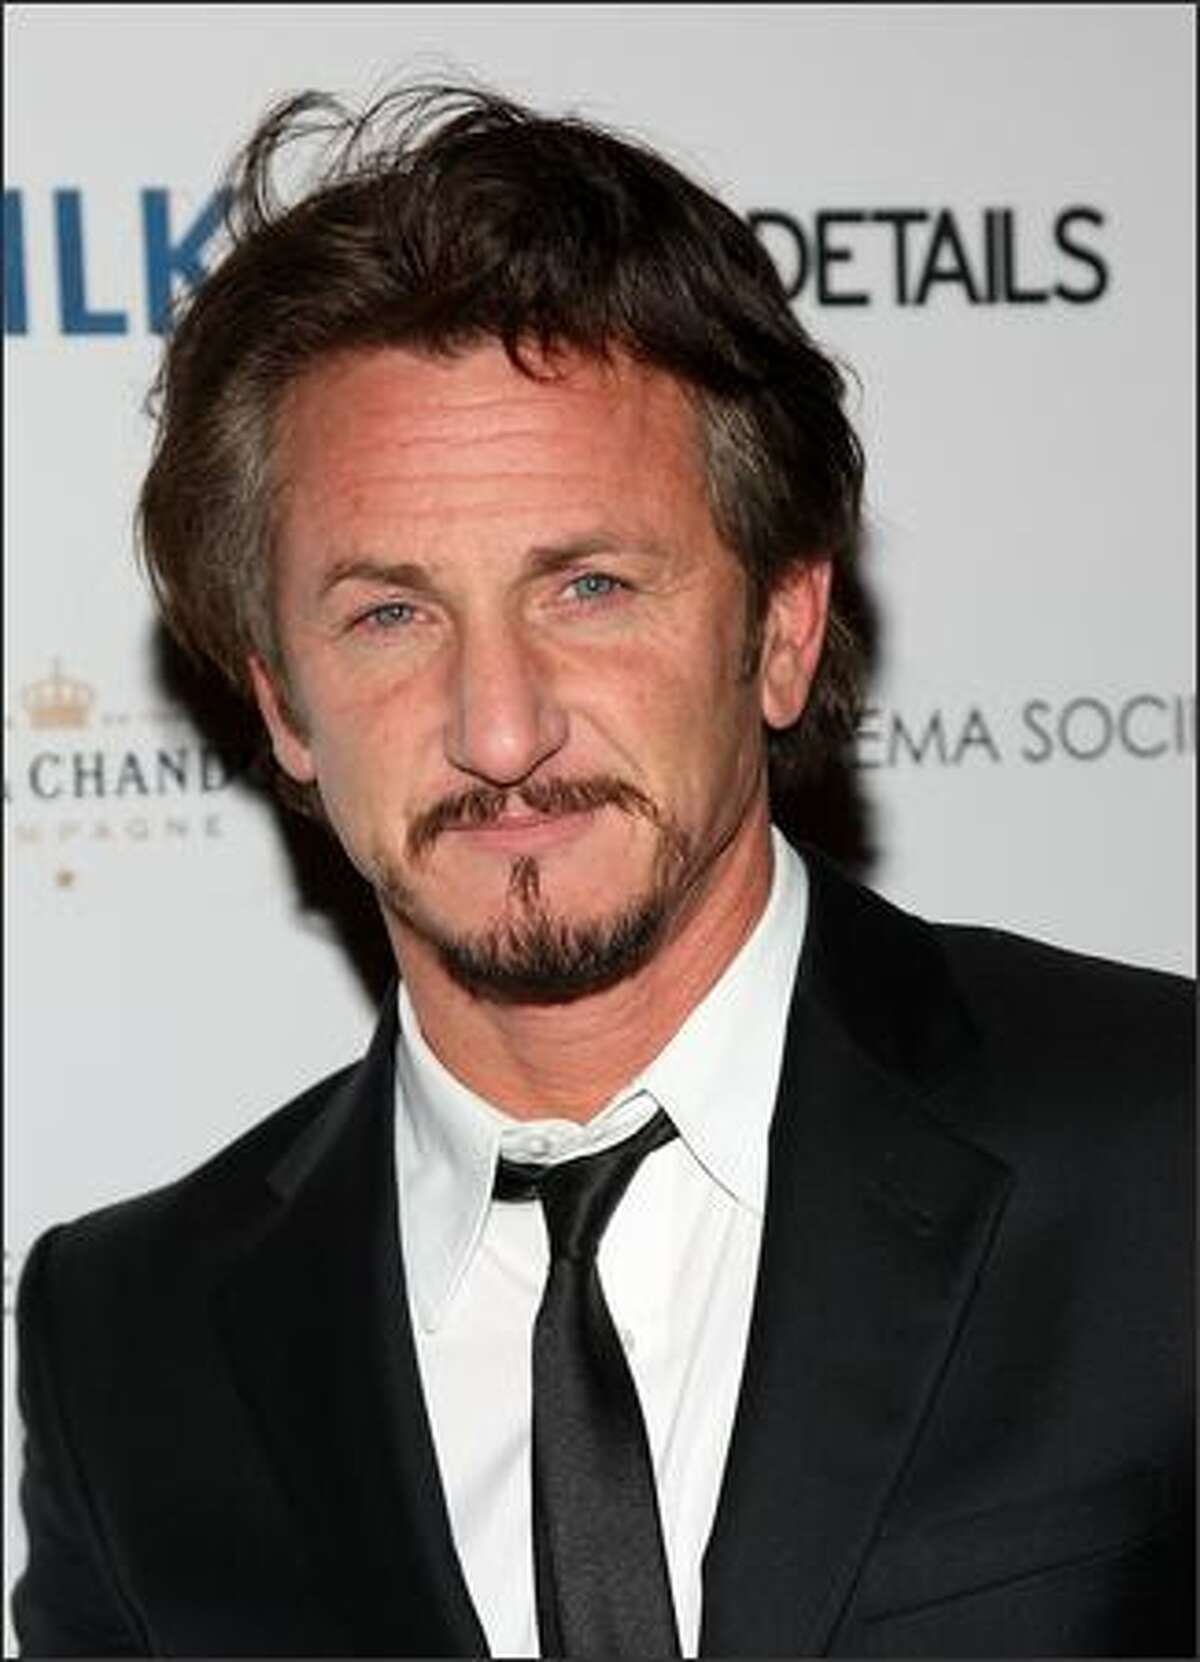 Actor Sean Penn attends a special screening of